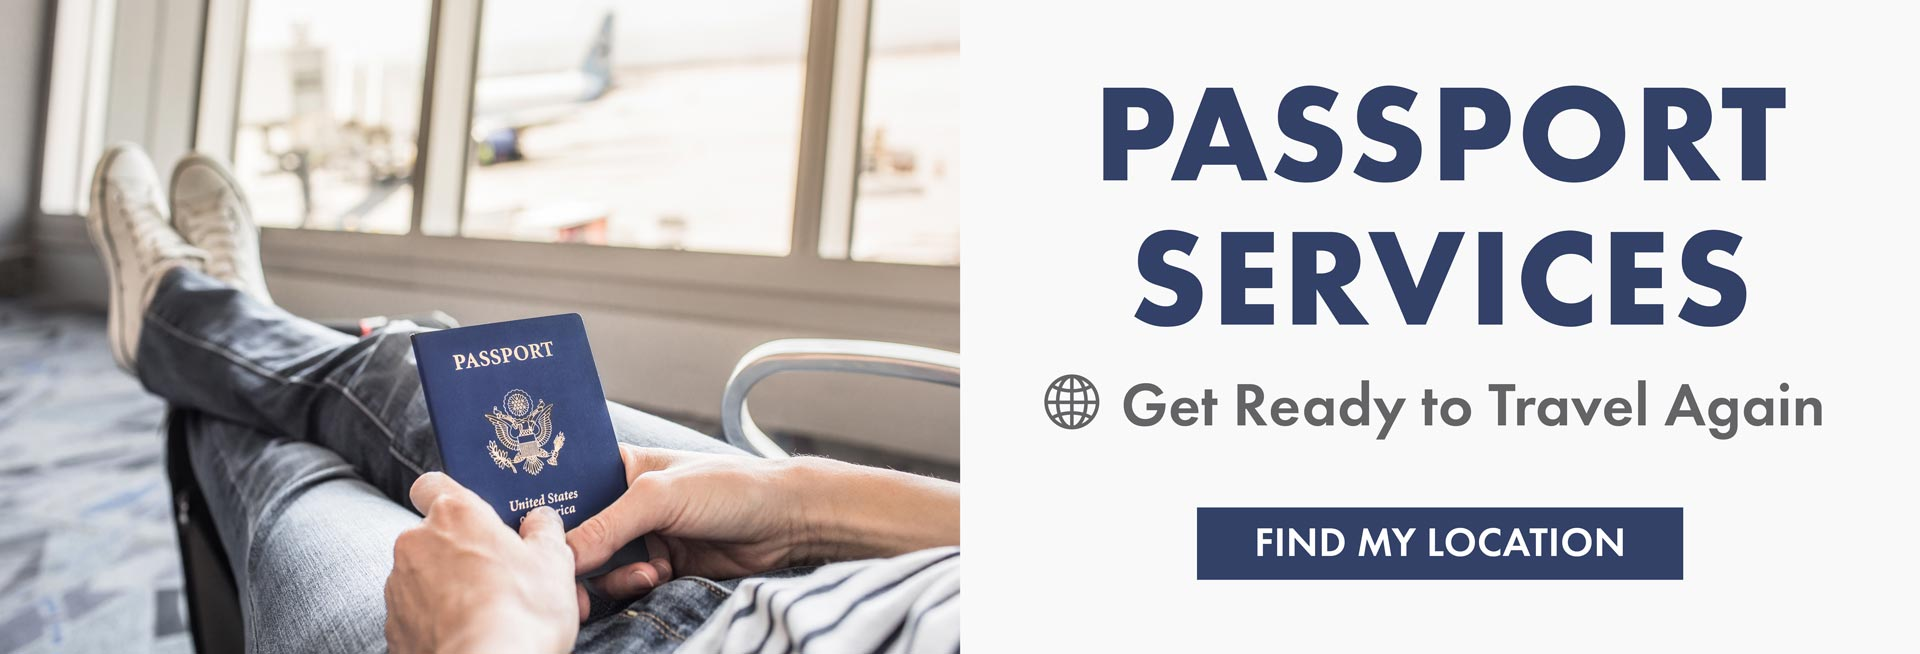 Passport Services - Get Ready to Travel Again - Find My Location